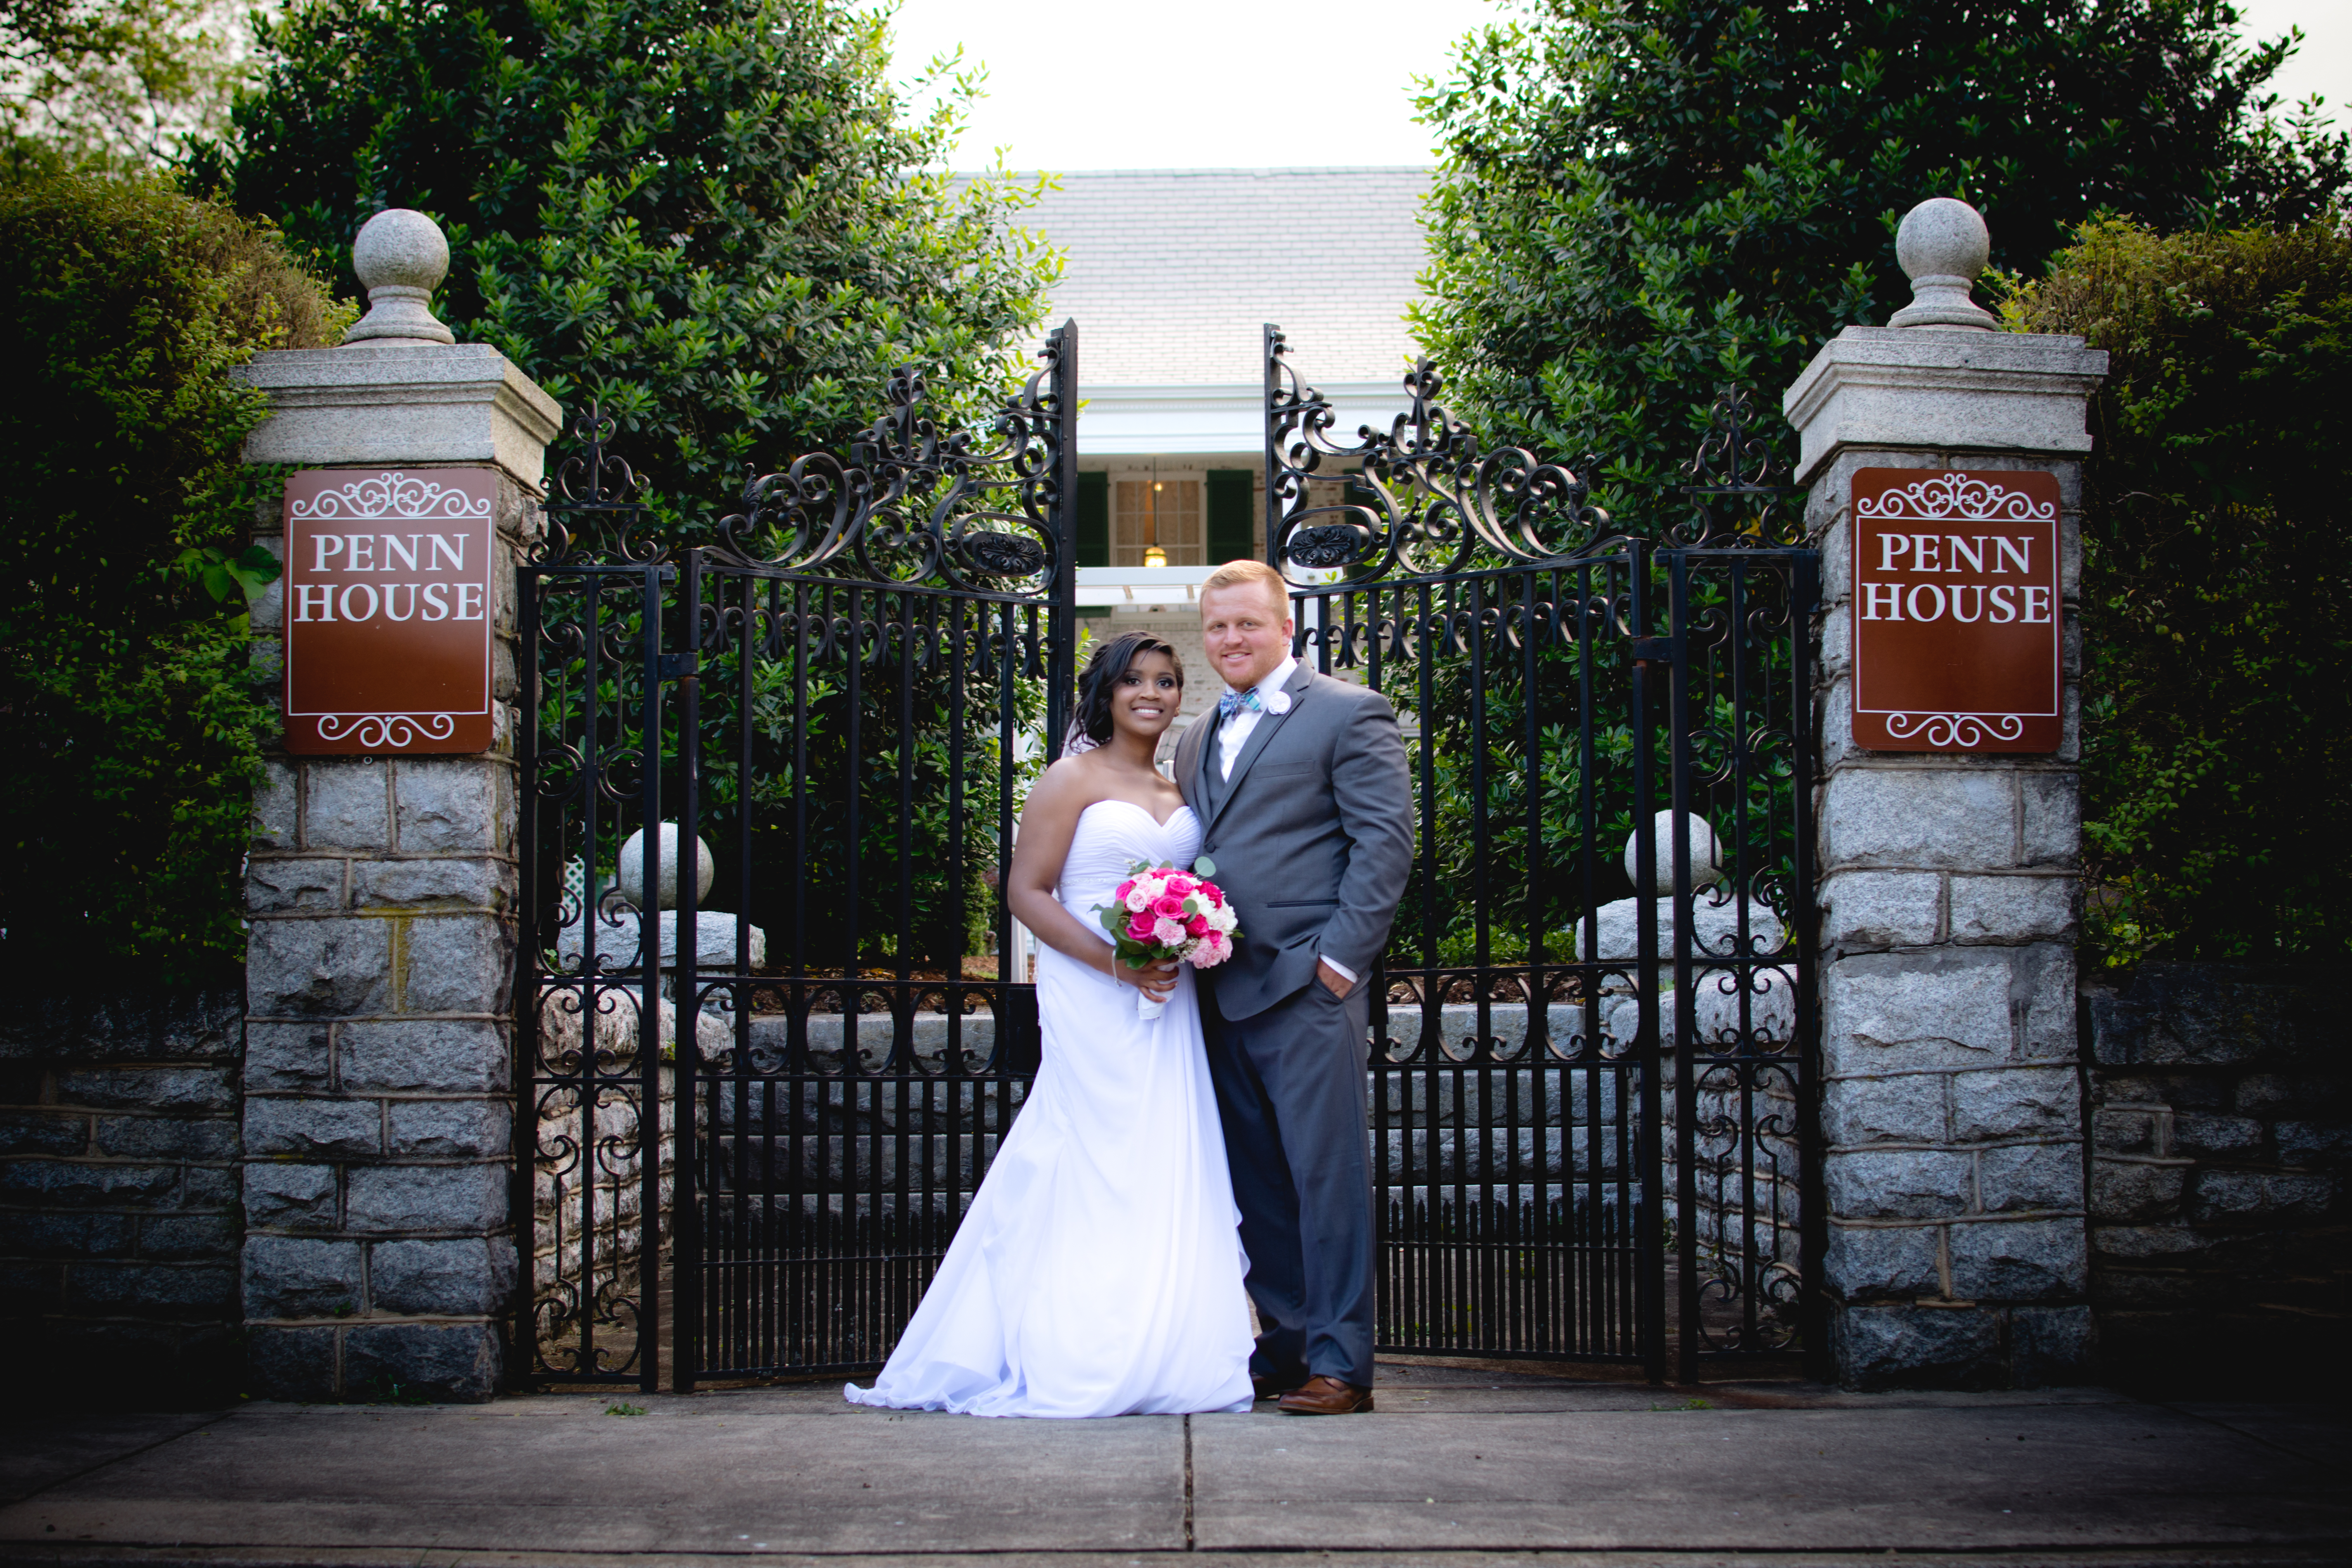 Bride and Groom at Penn House Gate